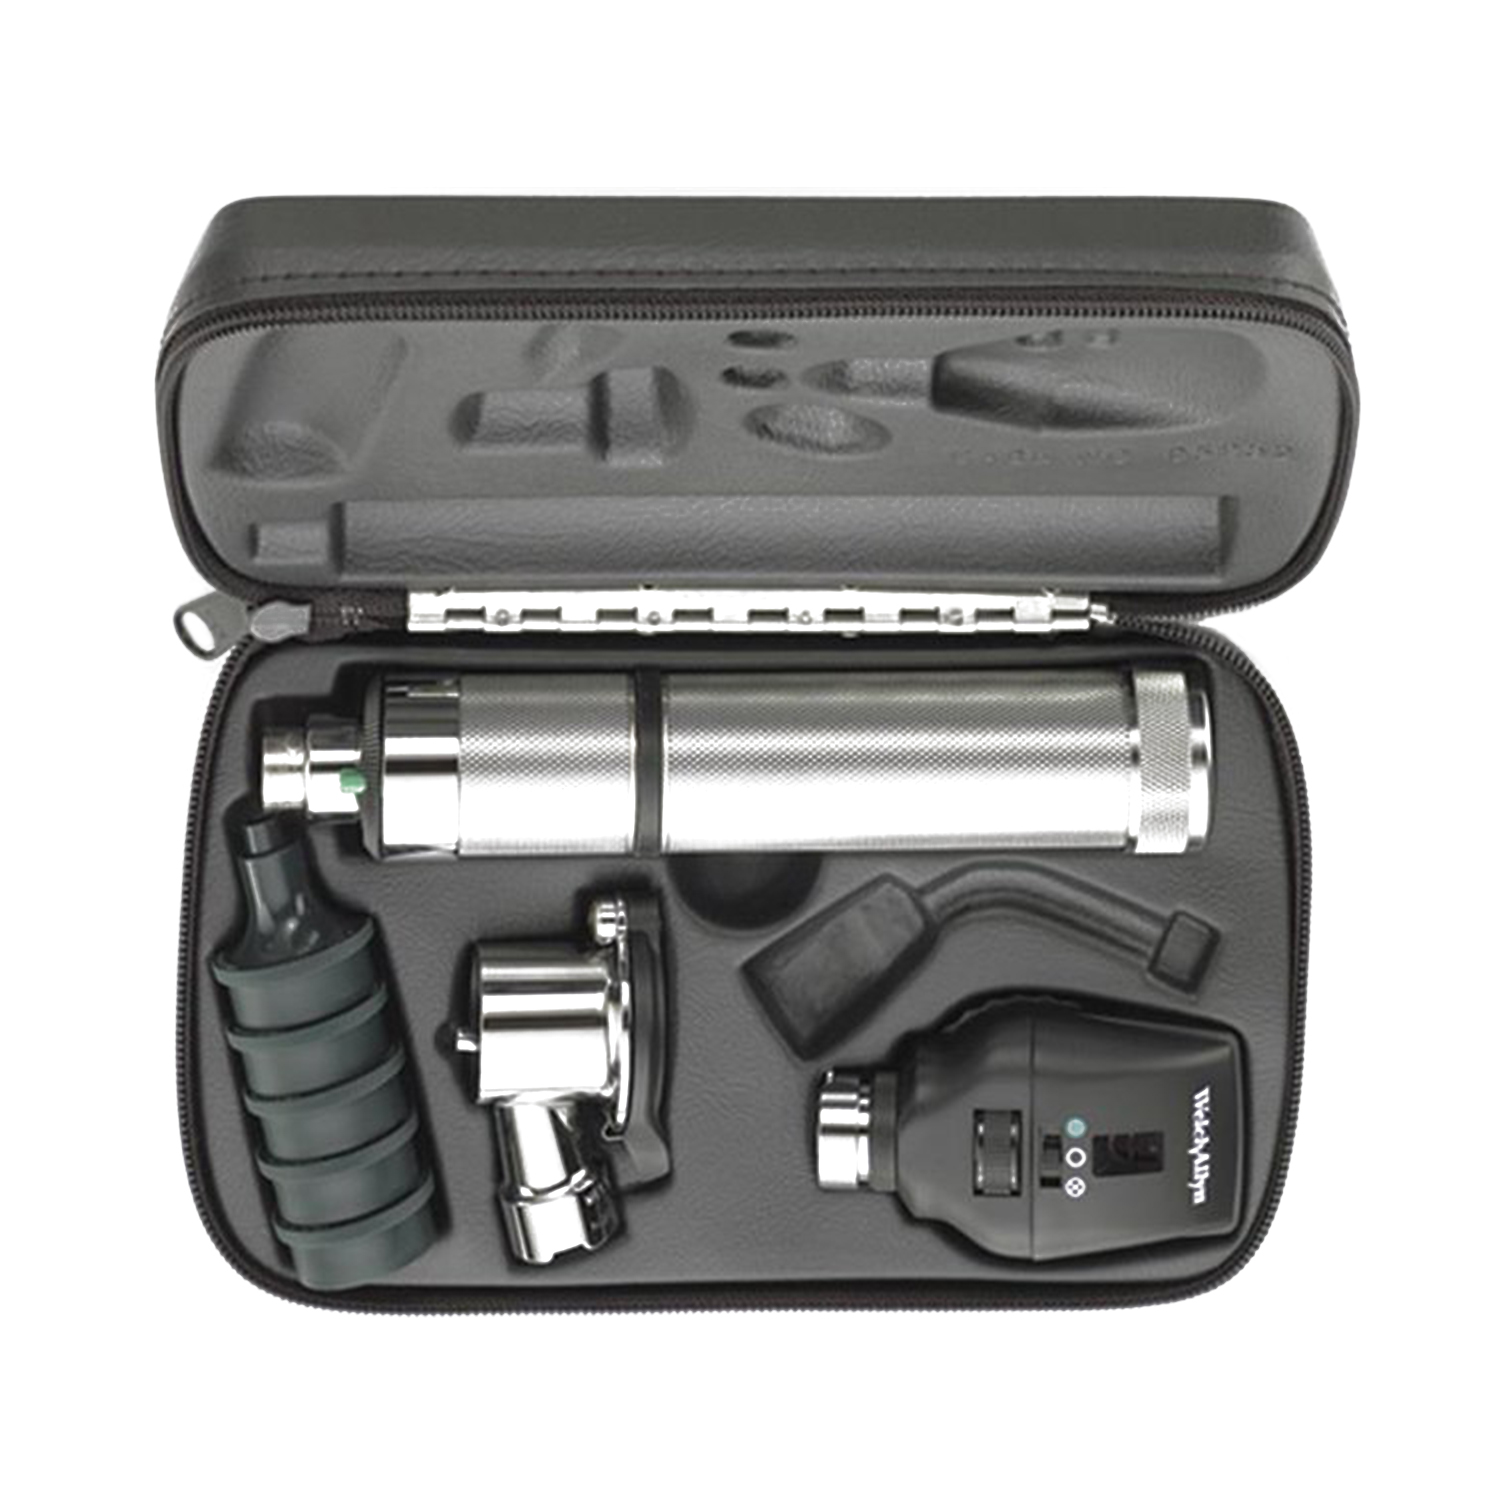 Coaxial Ophthalmoscope, Pneumatic Otoscope, Convertible Nickel-Cadmium Handle, Hard Case